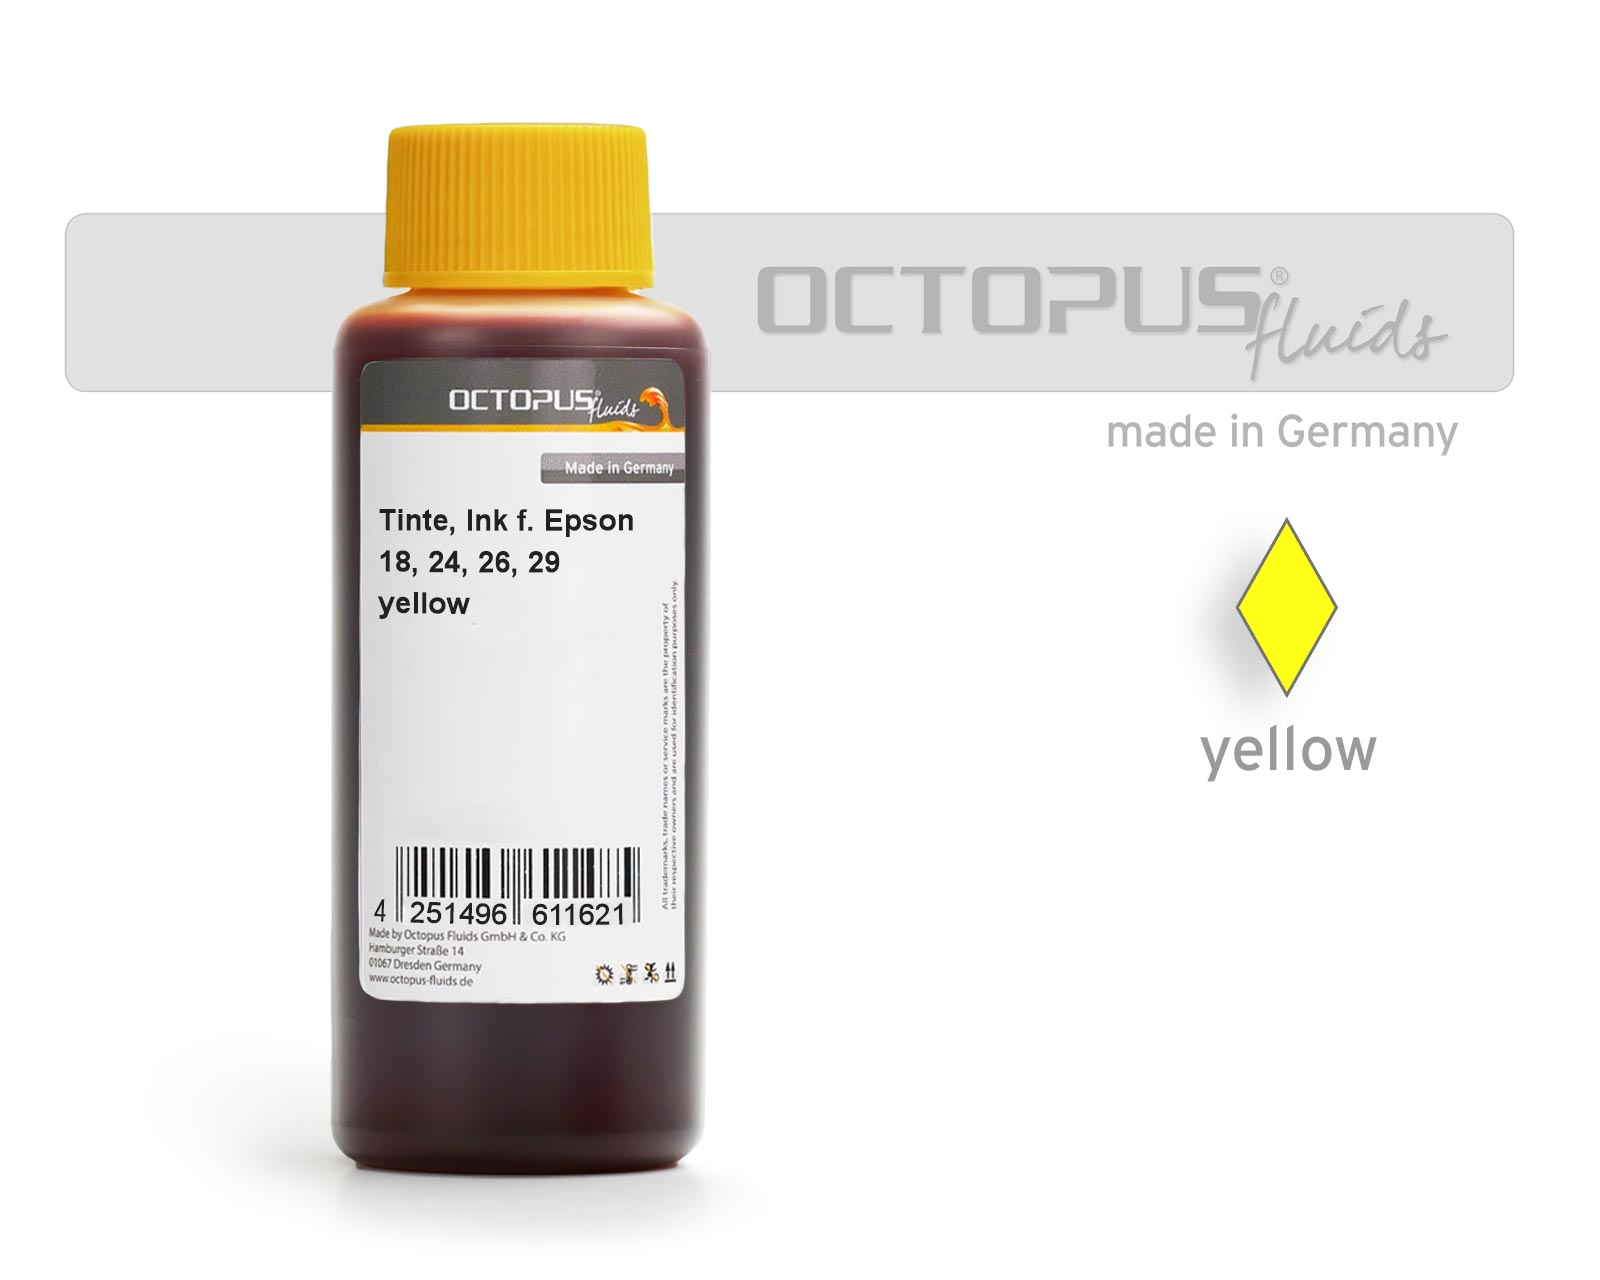 Octopus Ink for Epson 18, 24, 26 cartridges yellow